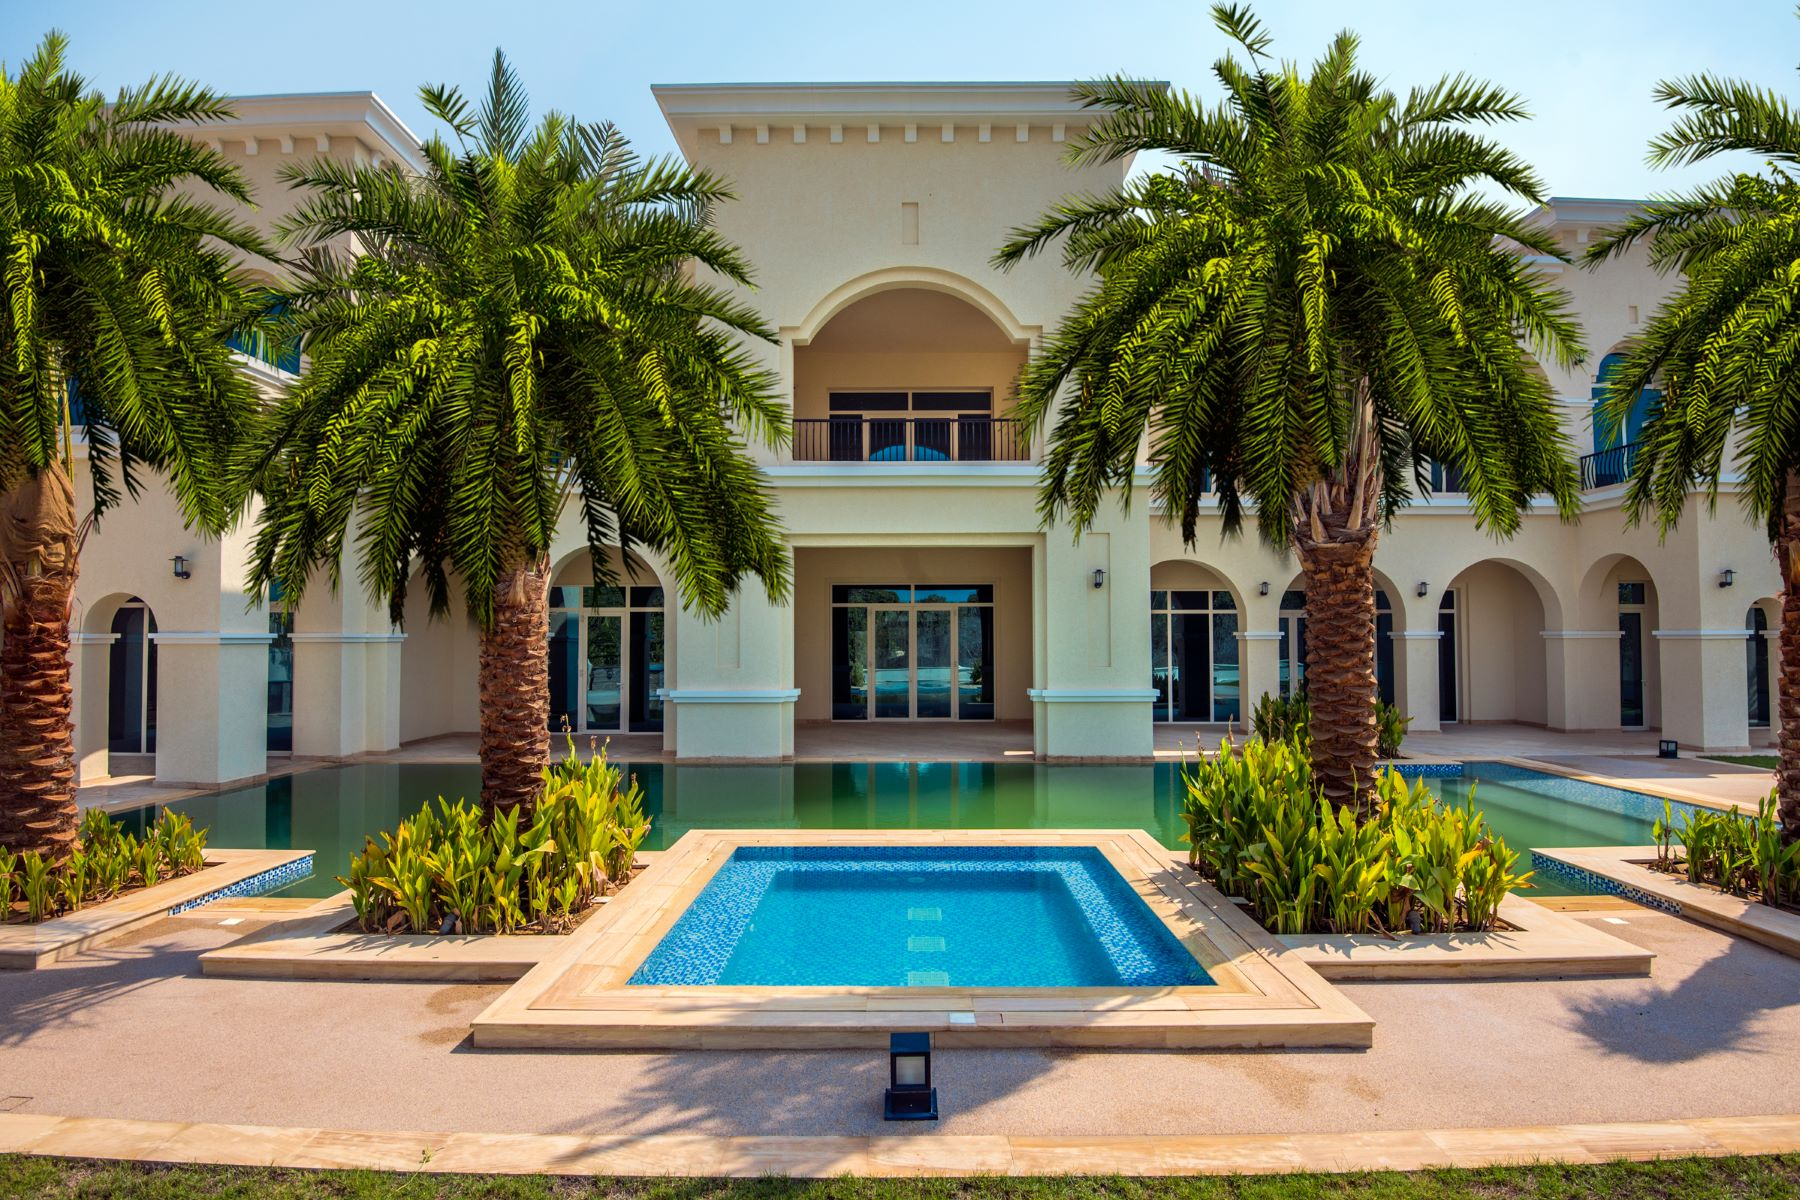 Single Family Home for Sale at New Exclusive Sector Villa Emirates Hills, Dubai, United Arab Emirates